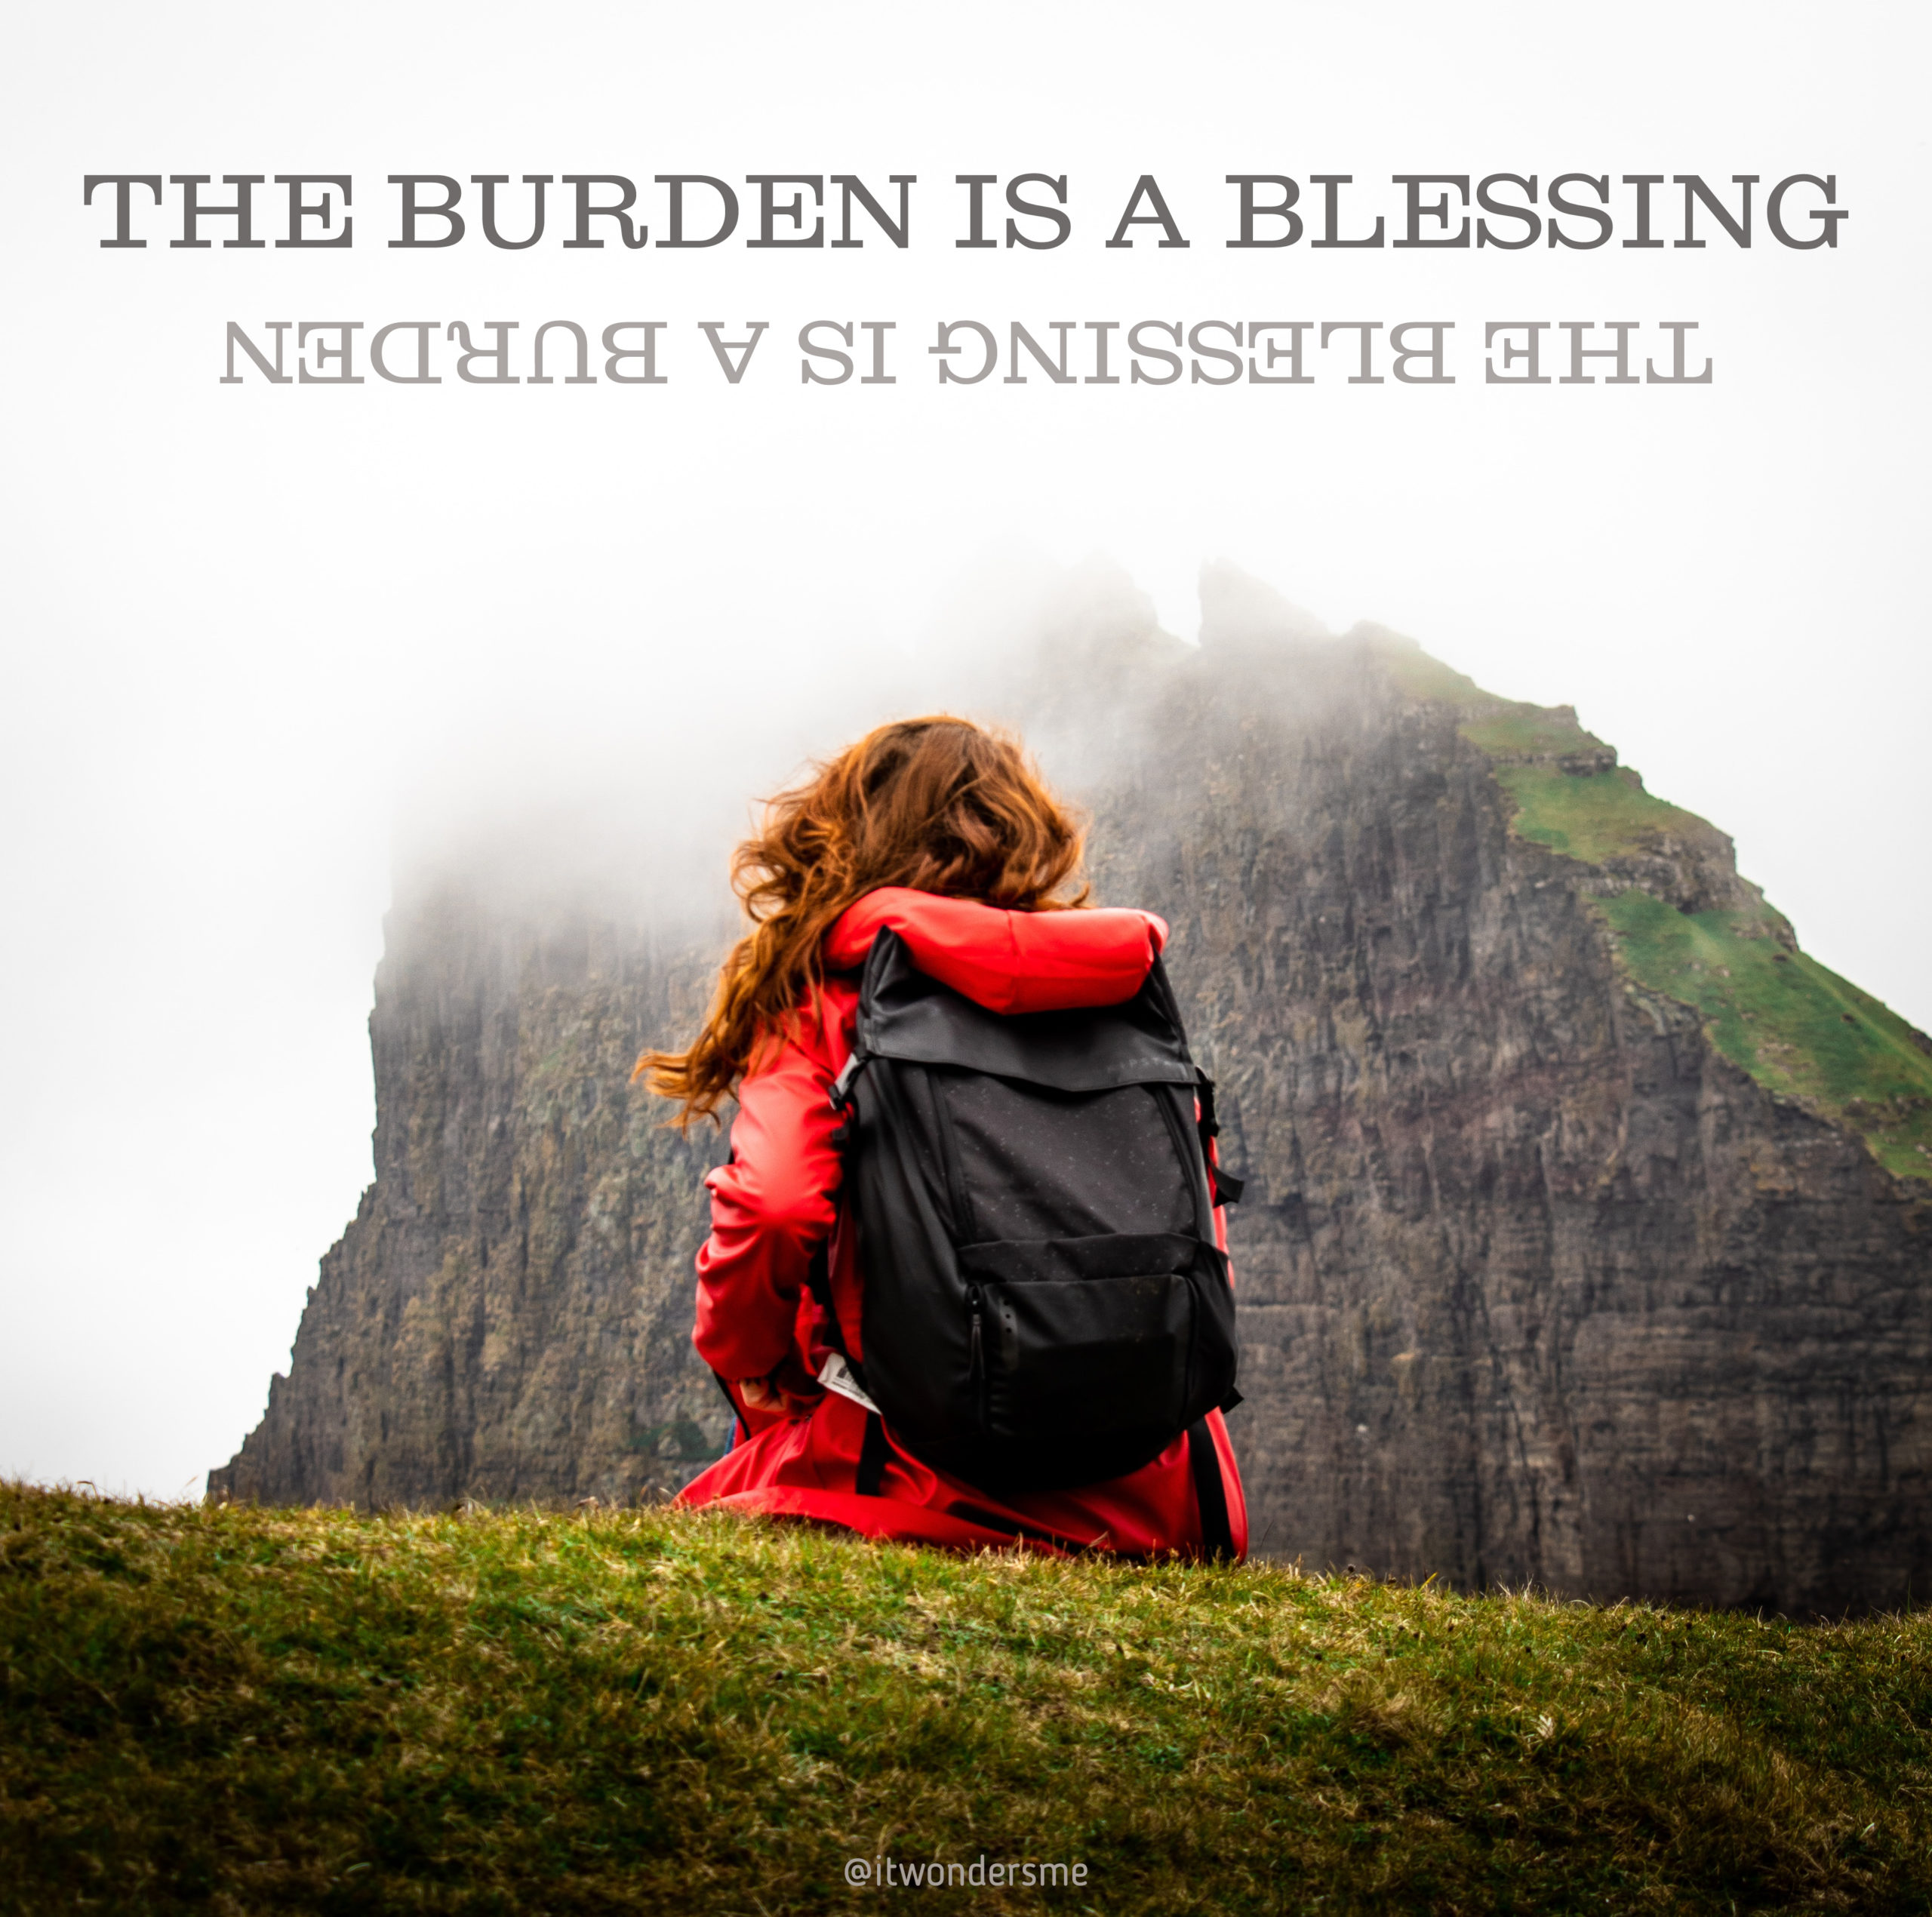 The burden is a blessing; the blessing is a burden